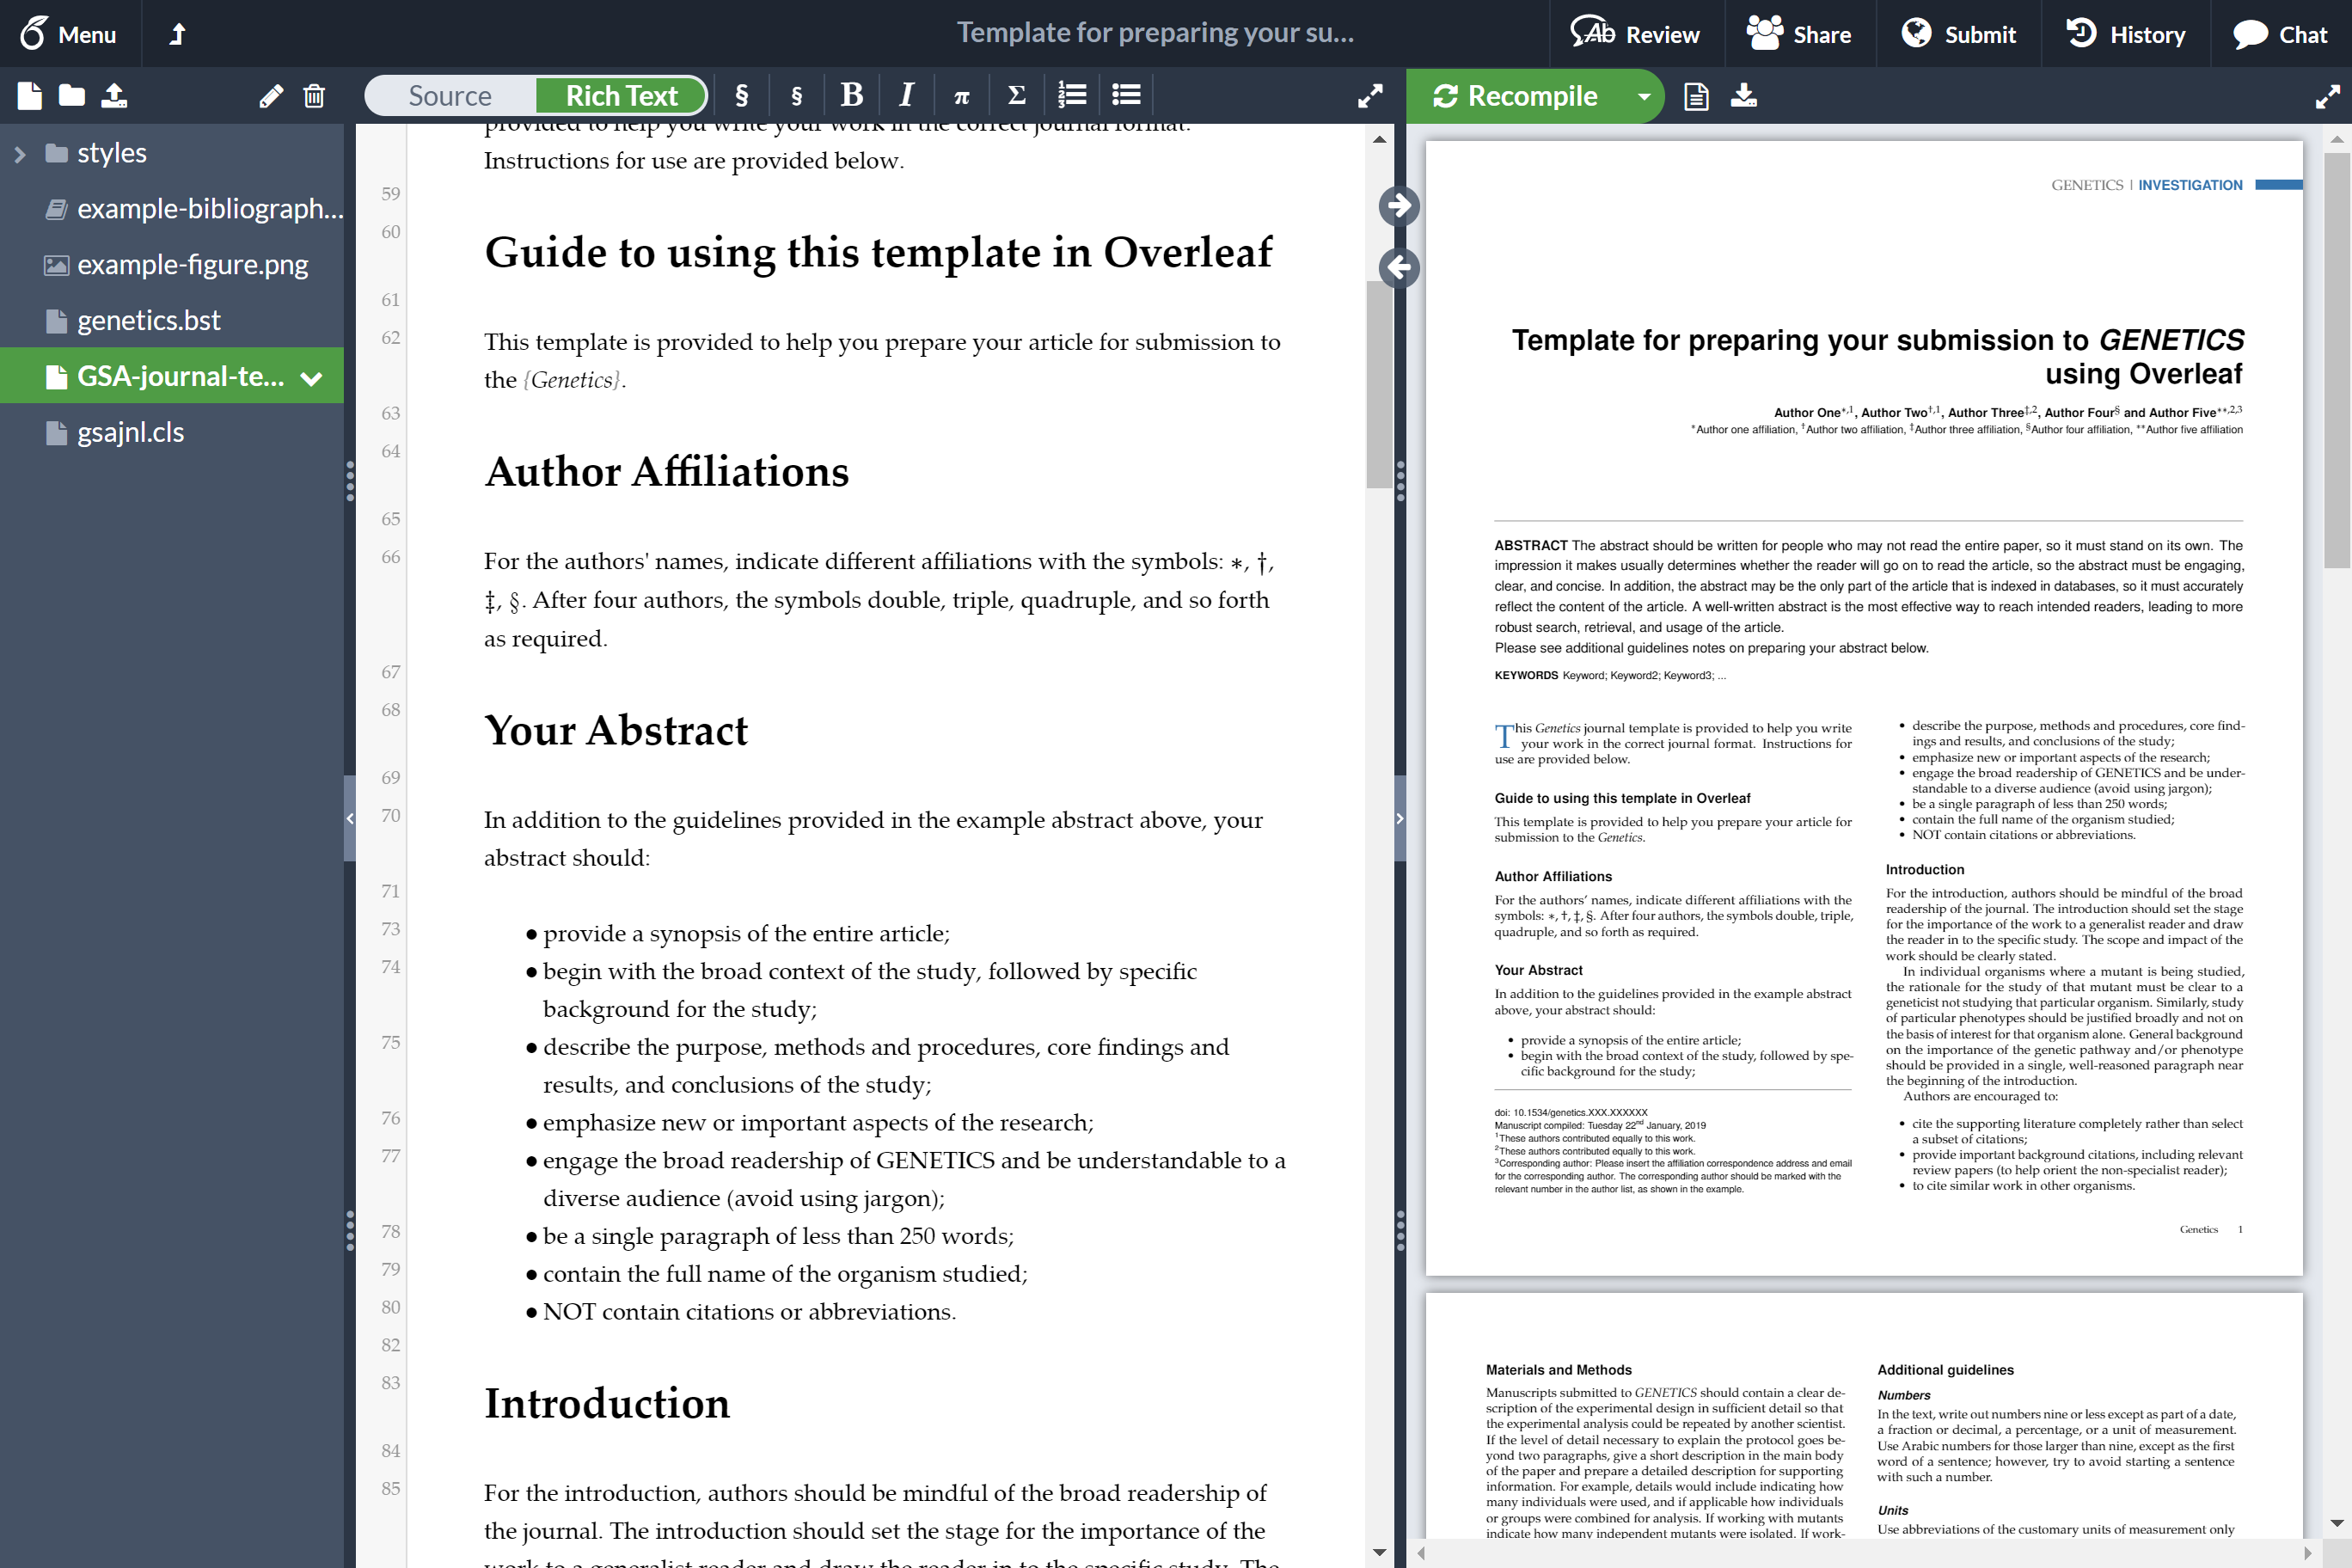 Overleaf-journal-template-richtext-example-hires